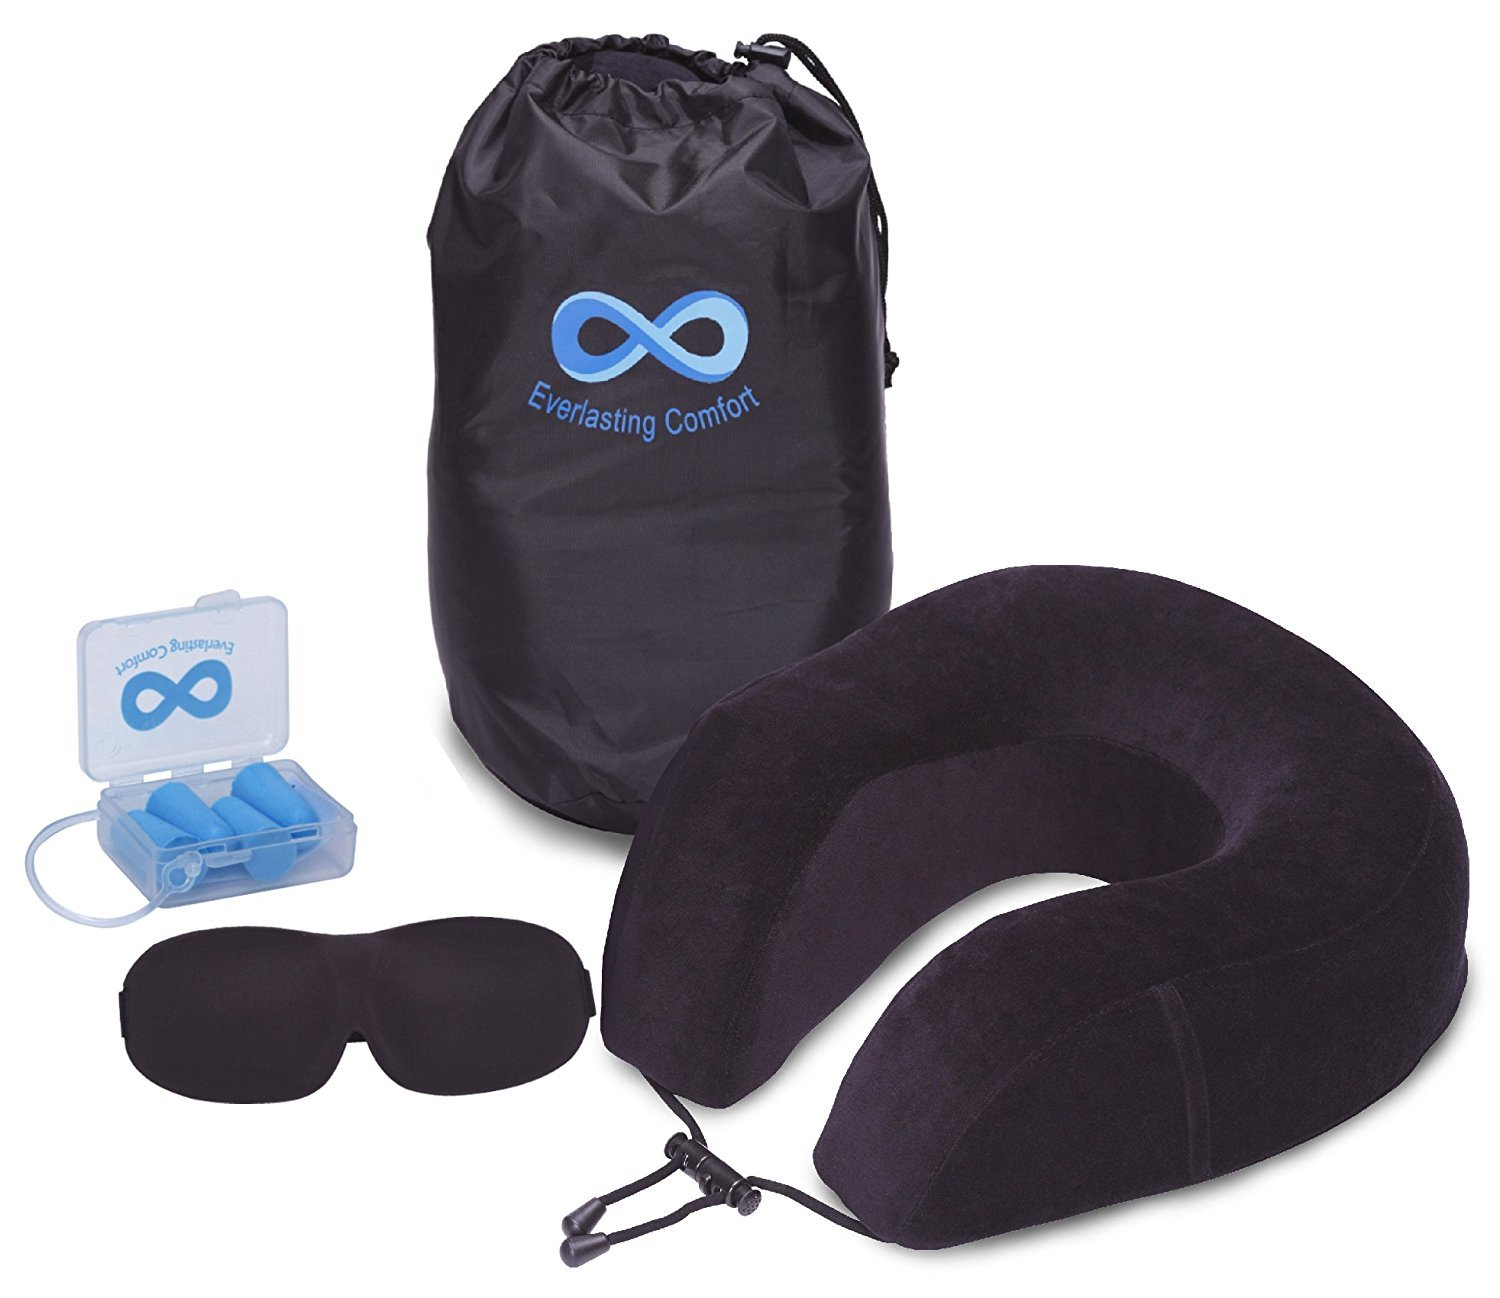 Everlasting Comfort 100% Pure Memory Foam Neck Pillow Airplane Travel Kit With Ultra Plush Velour Cover, Sleep Mask and Earplugs by Everlasting Comfort